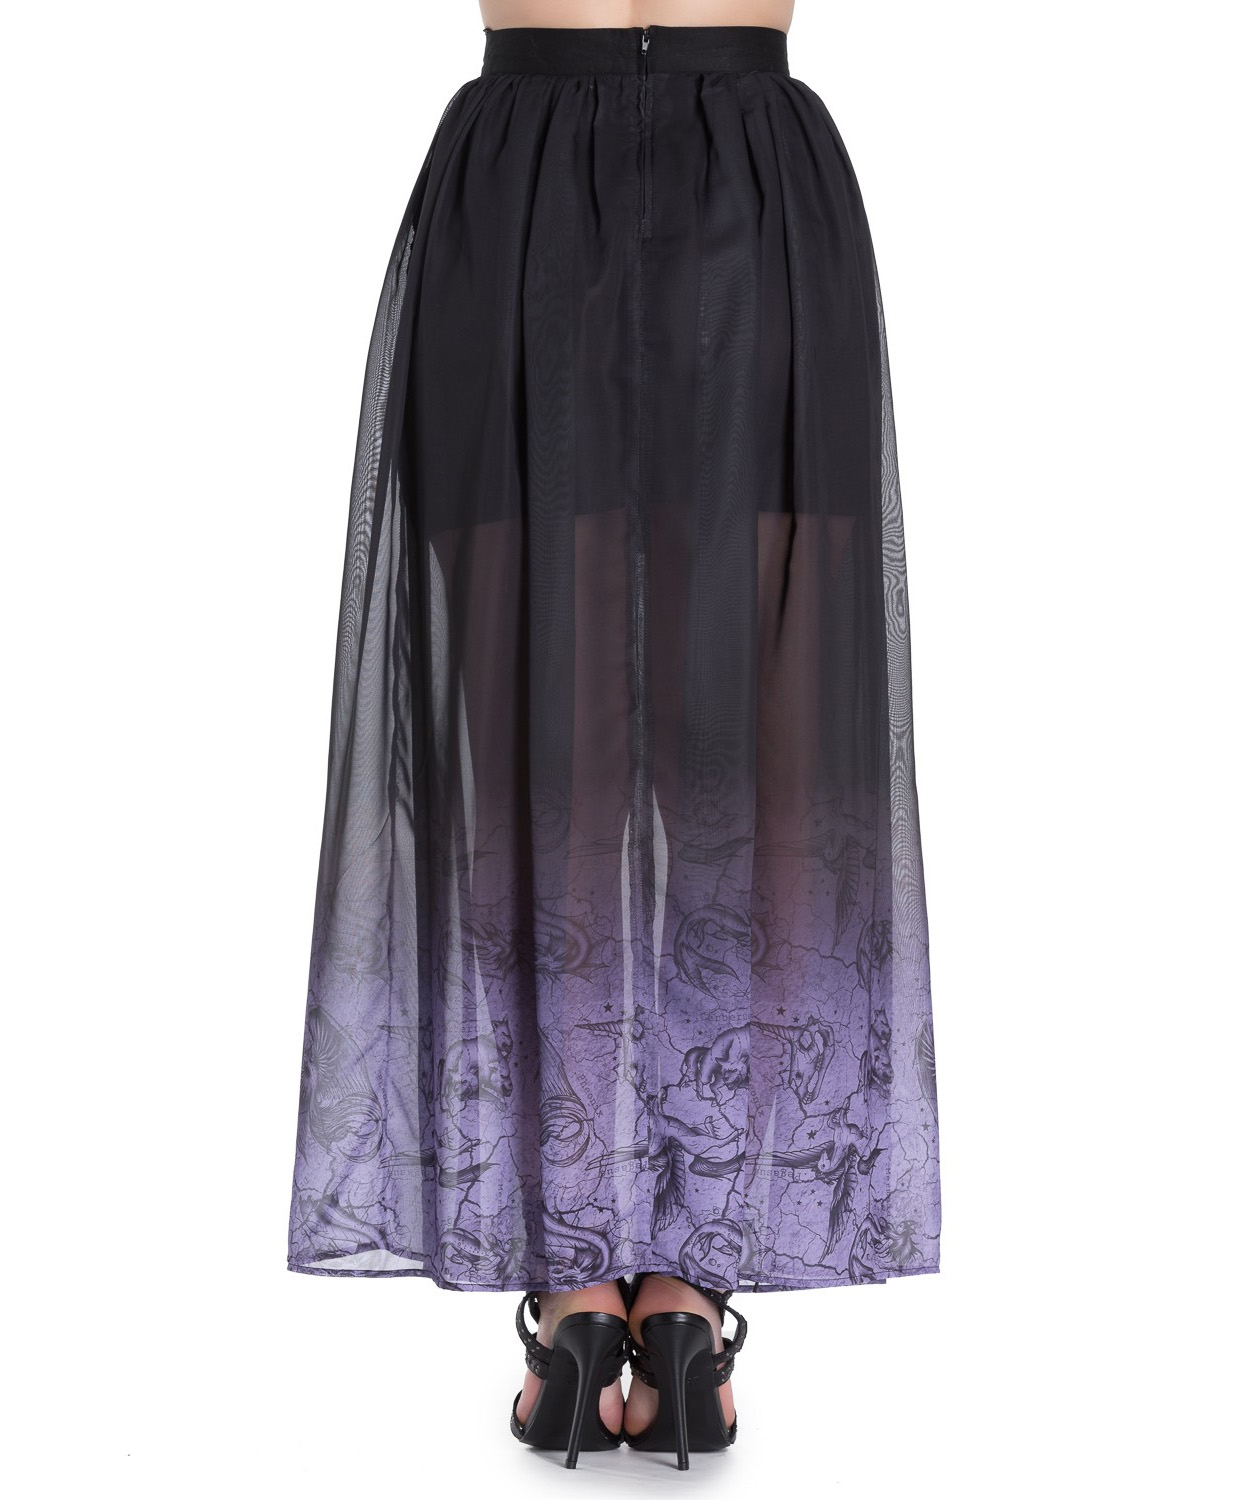 Hell-Bunny-Spin-Doctor-Goth-Purple-Mystical-EVADINE-Maxi-Skirt-All-Sizes thumbnail 9